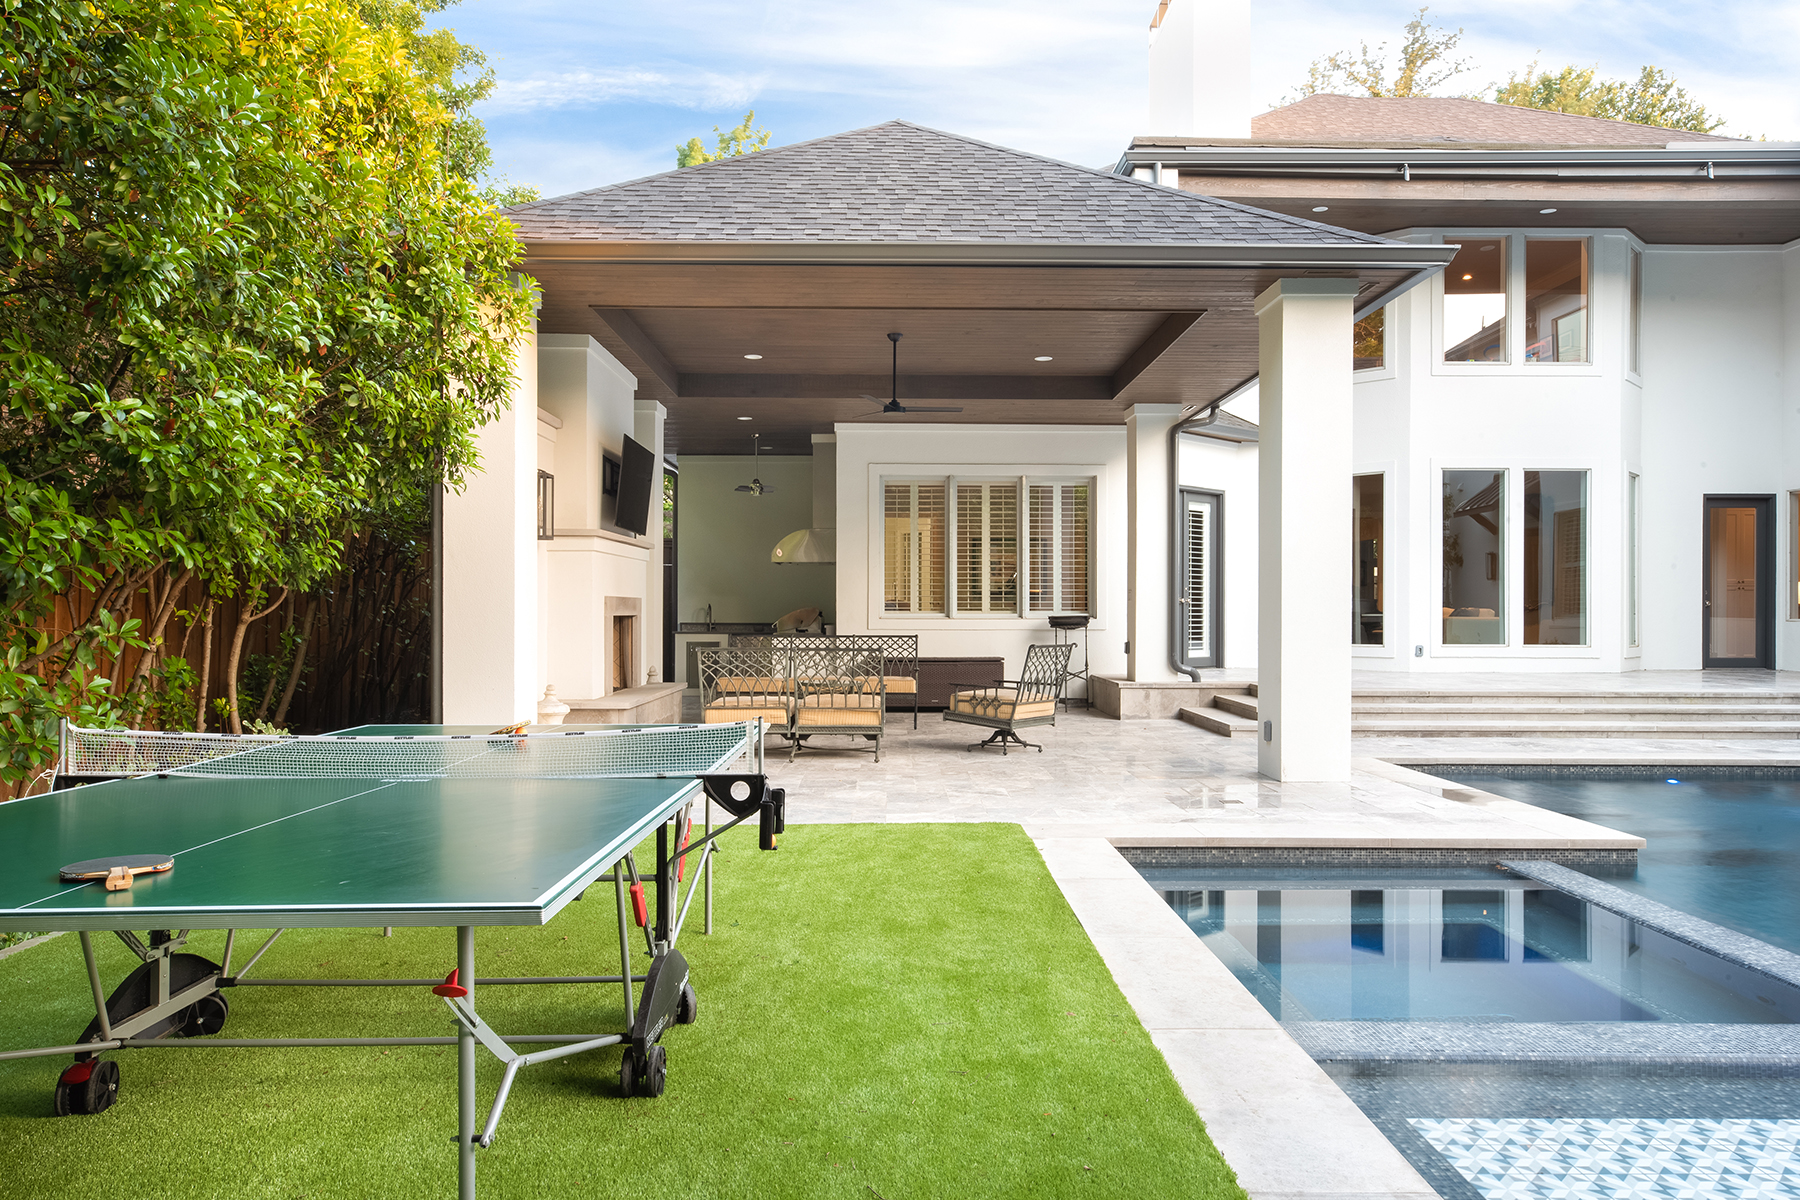 ddla-design-norwood-outdoor-living.jpg